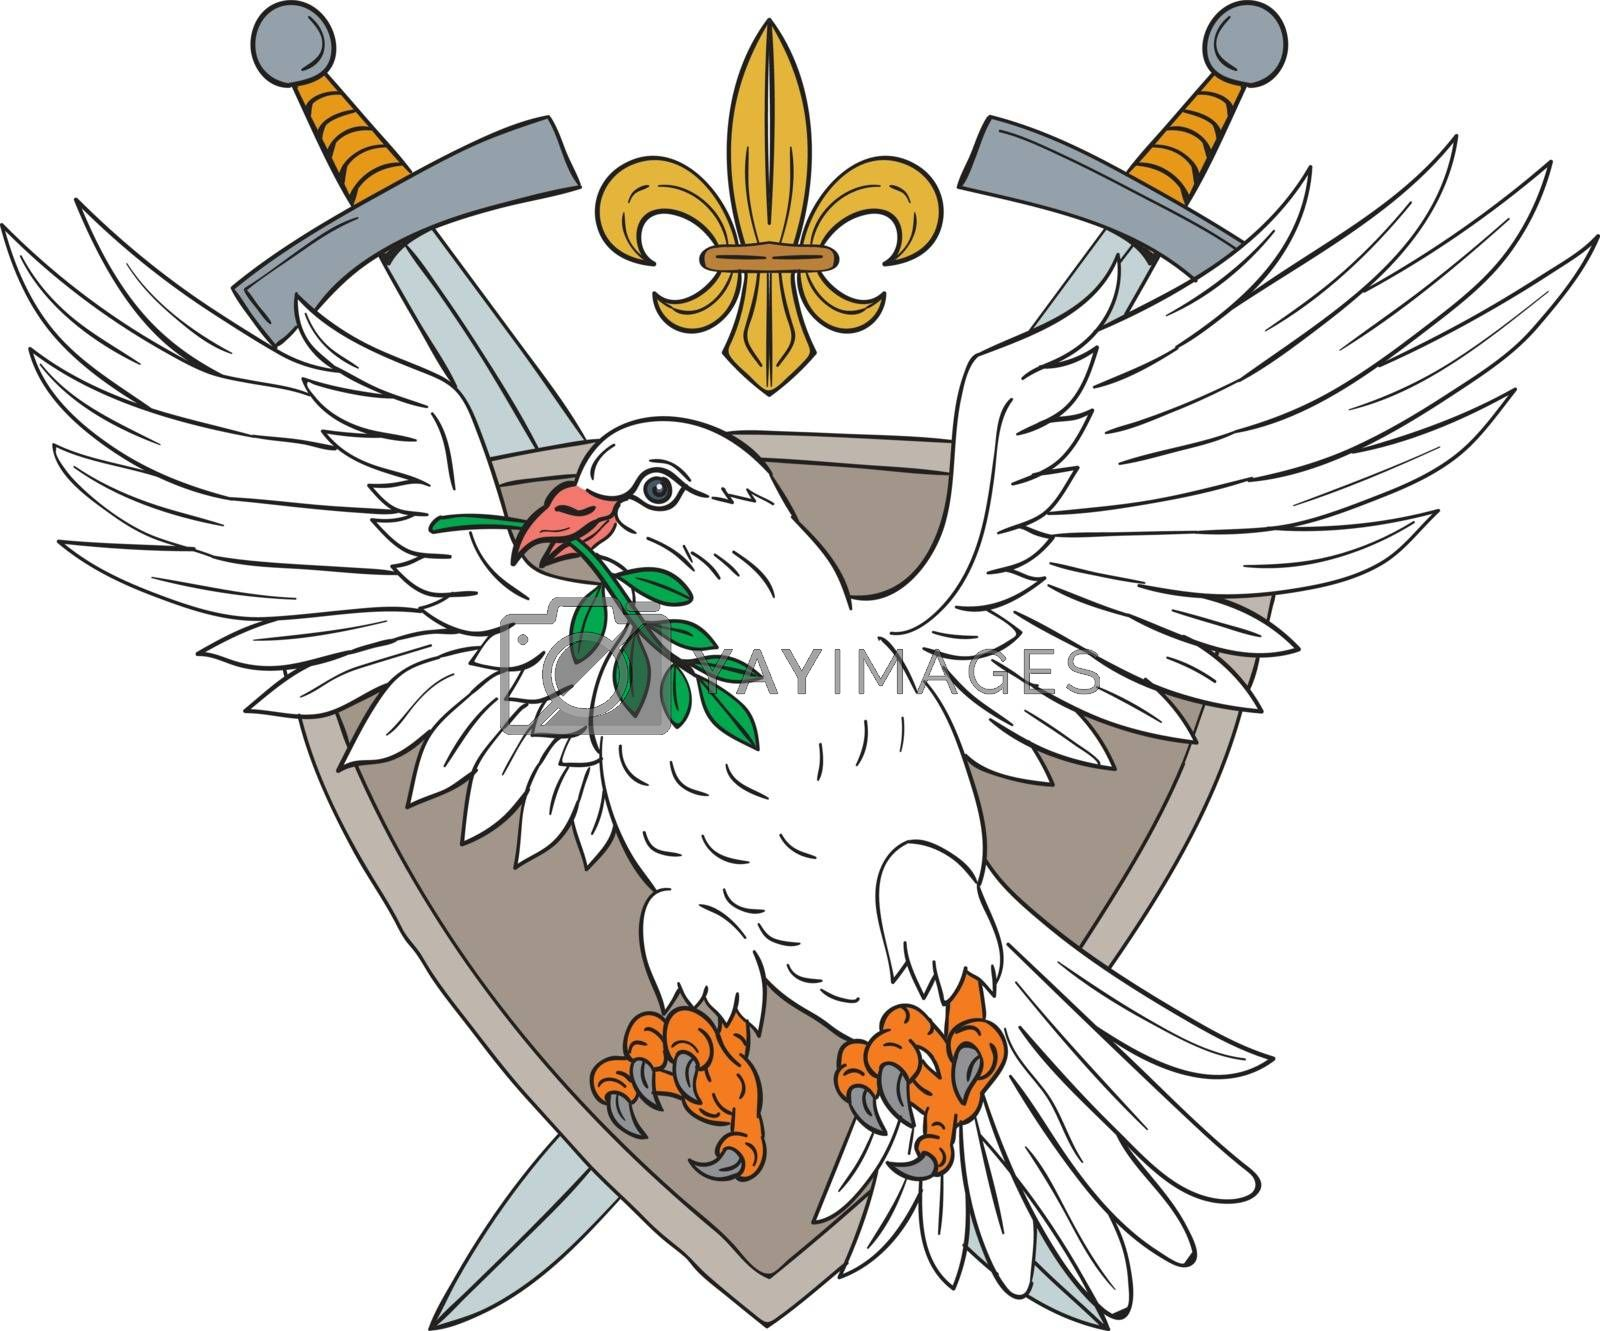 Drawing sketch style illustrarion of a dove with olive leaf in its beak set inside shield with sword and fleur de lis in the background.